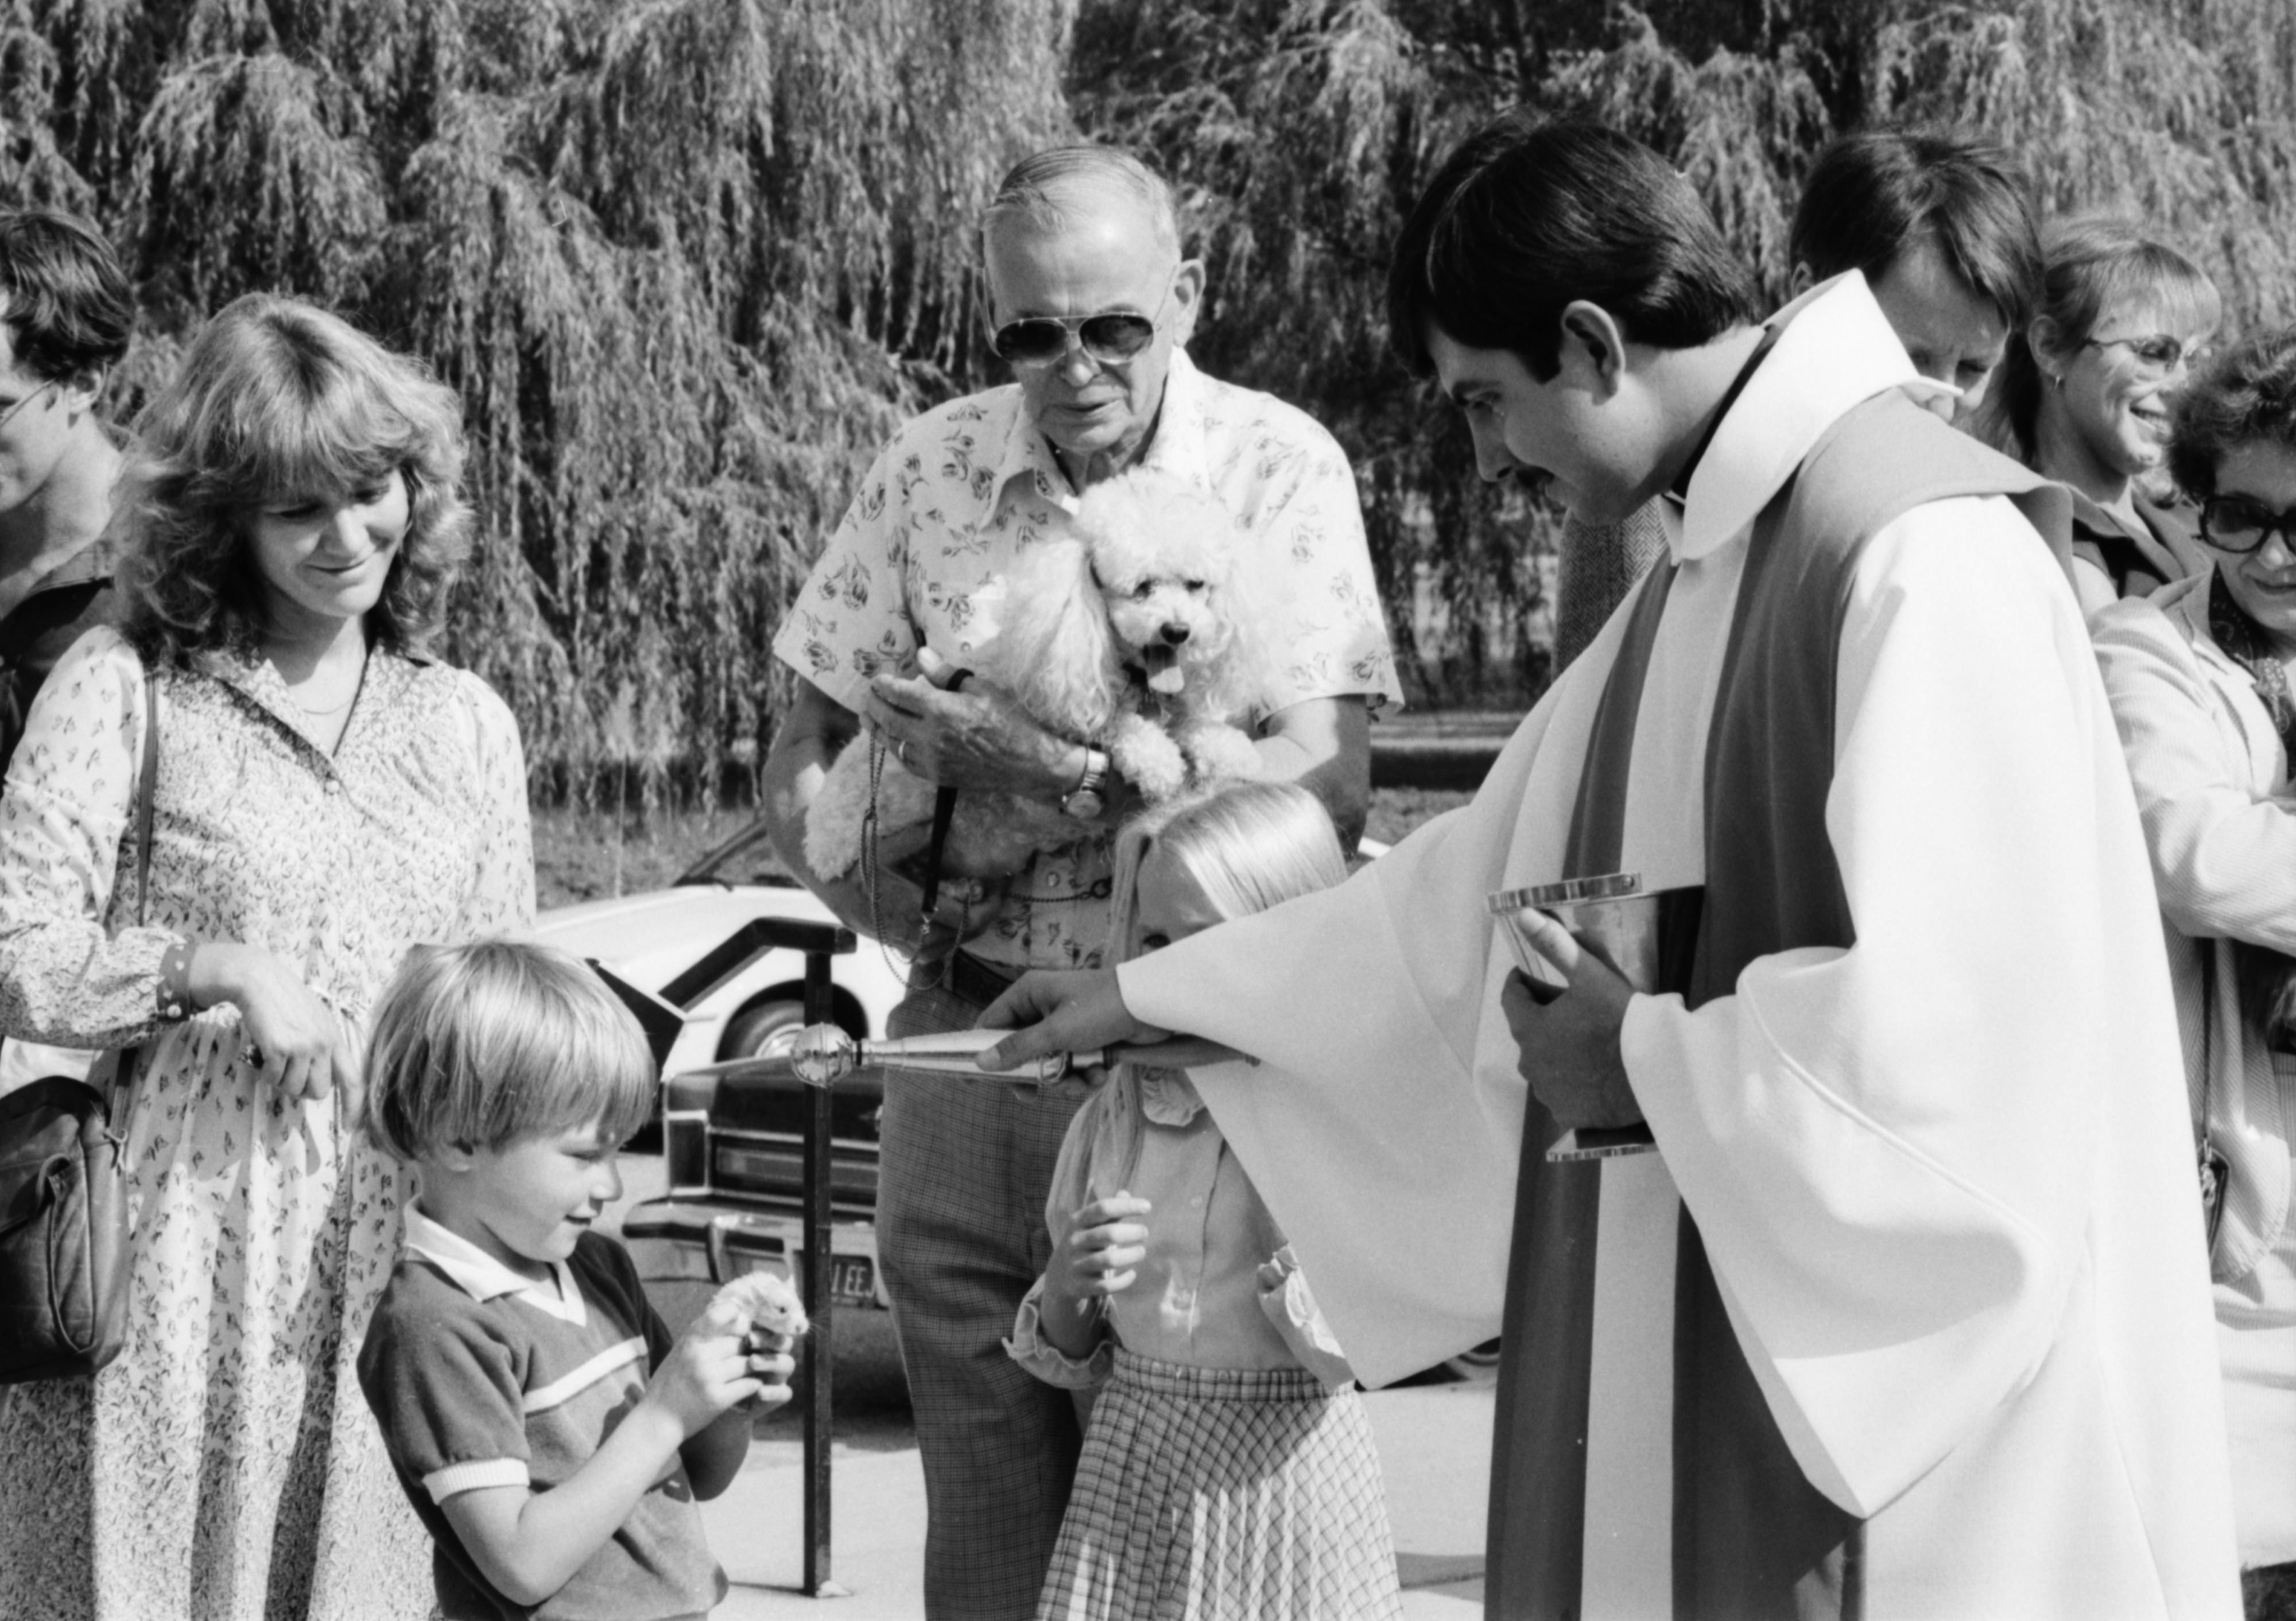 Rev. Mark Inglot blesses Neil Zajic's hamster, Bronco, during the Blessing of the Pets at St. Francis of Assisi Church, October 1983 image